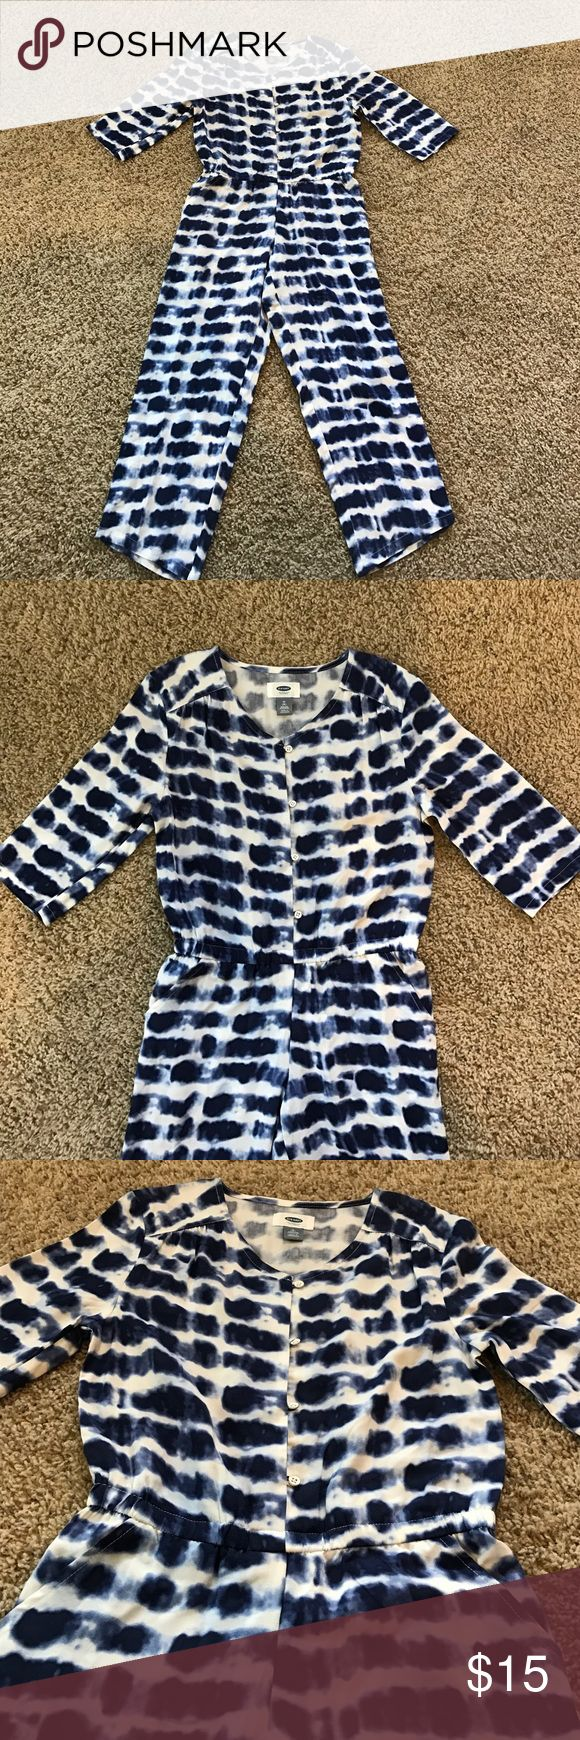 NWOT Girls Old Navy jumper Blue and white girls, four button, two pocket tie dye jumper. Never worn. Old Navy Other